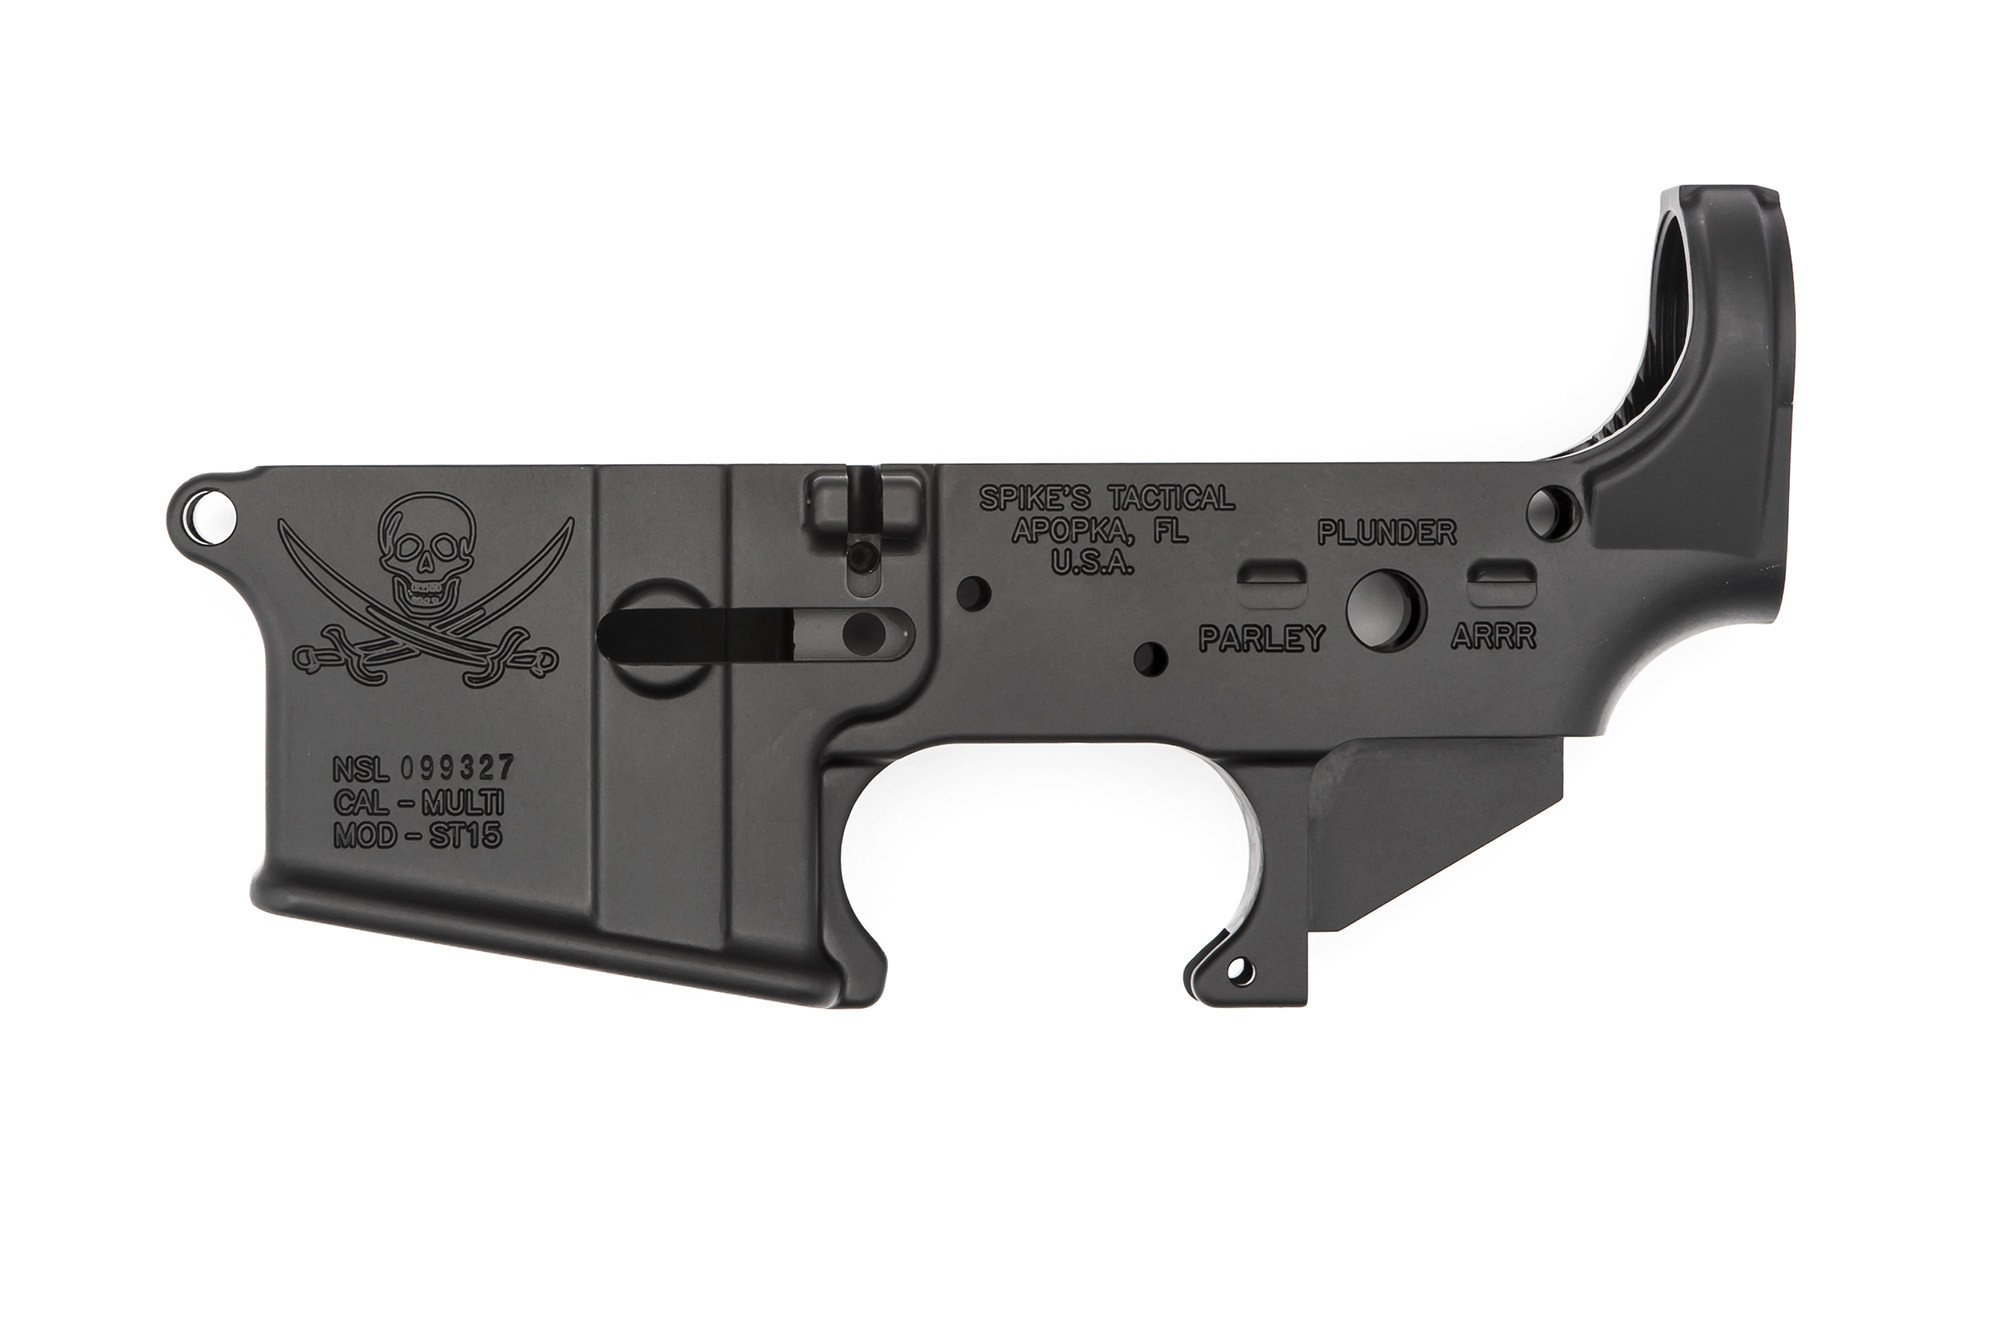 ar15-spikes-tactical-stripped-lower-receiver-calico-jack-anodized-black-900219